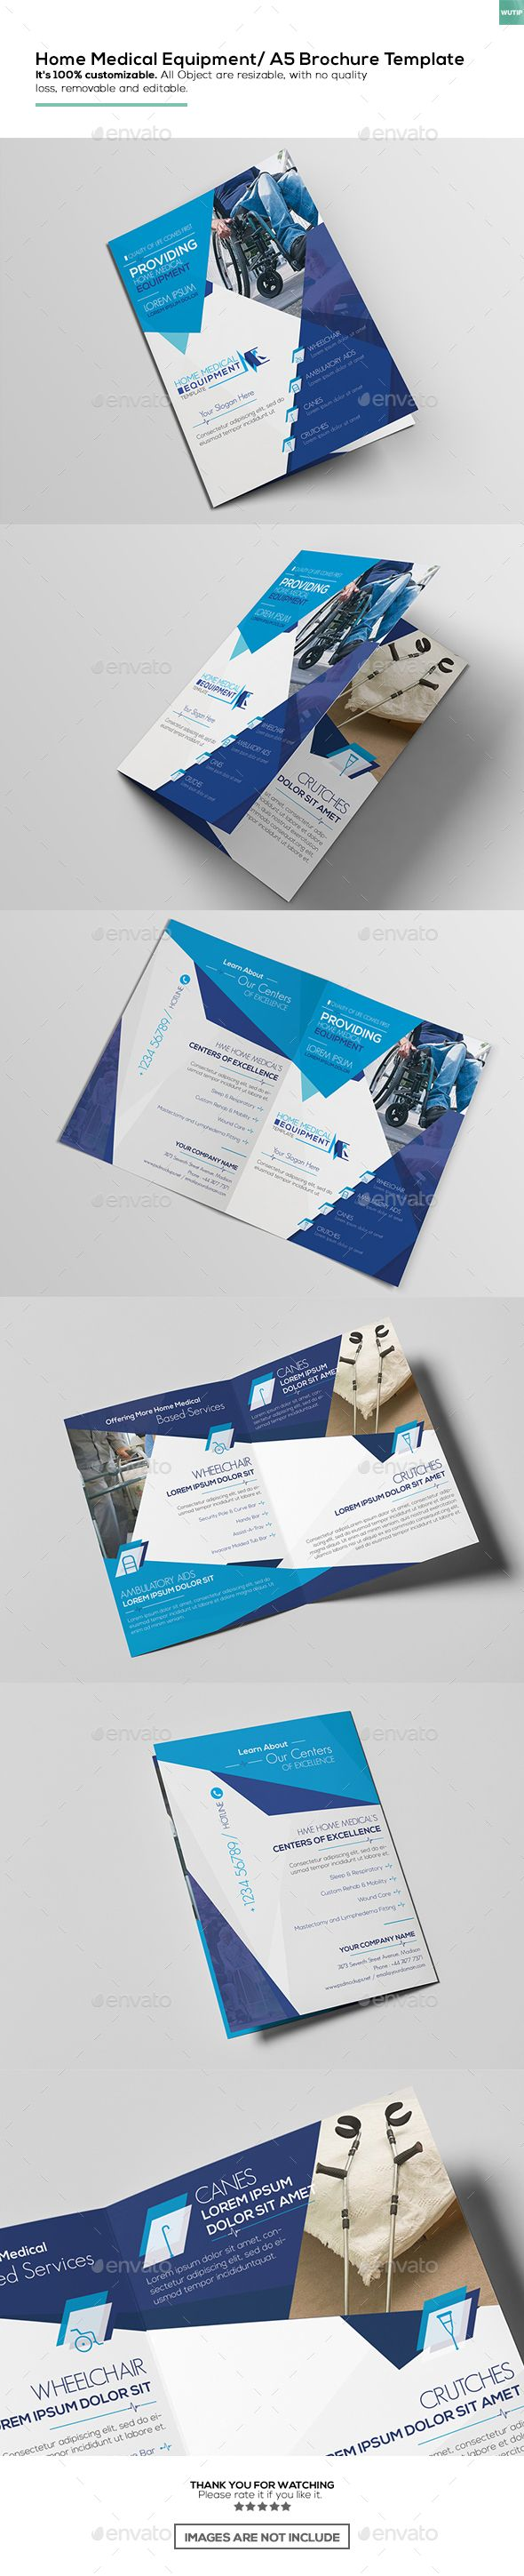 Home Medical Equipment/ A5 Brochure Design Template - Corporate Brochure Template PSD. Download here: http://graphicriver.net/item/home-medical-equipment-a5-brochure-template/16895854?s_rank=69&ref=yinkira